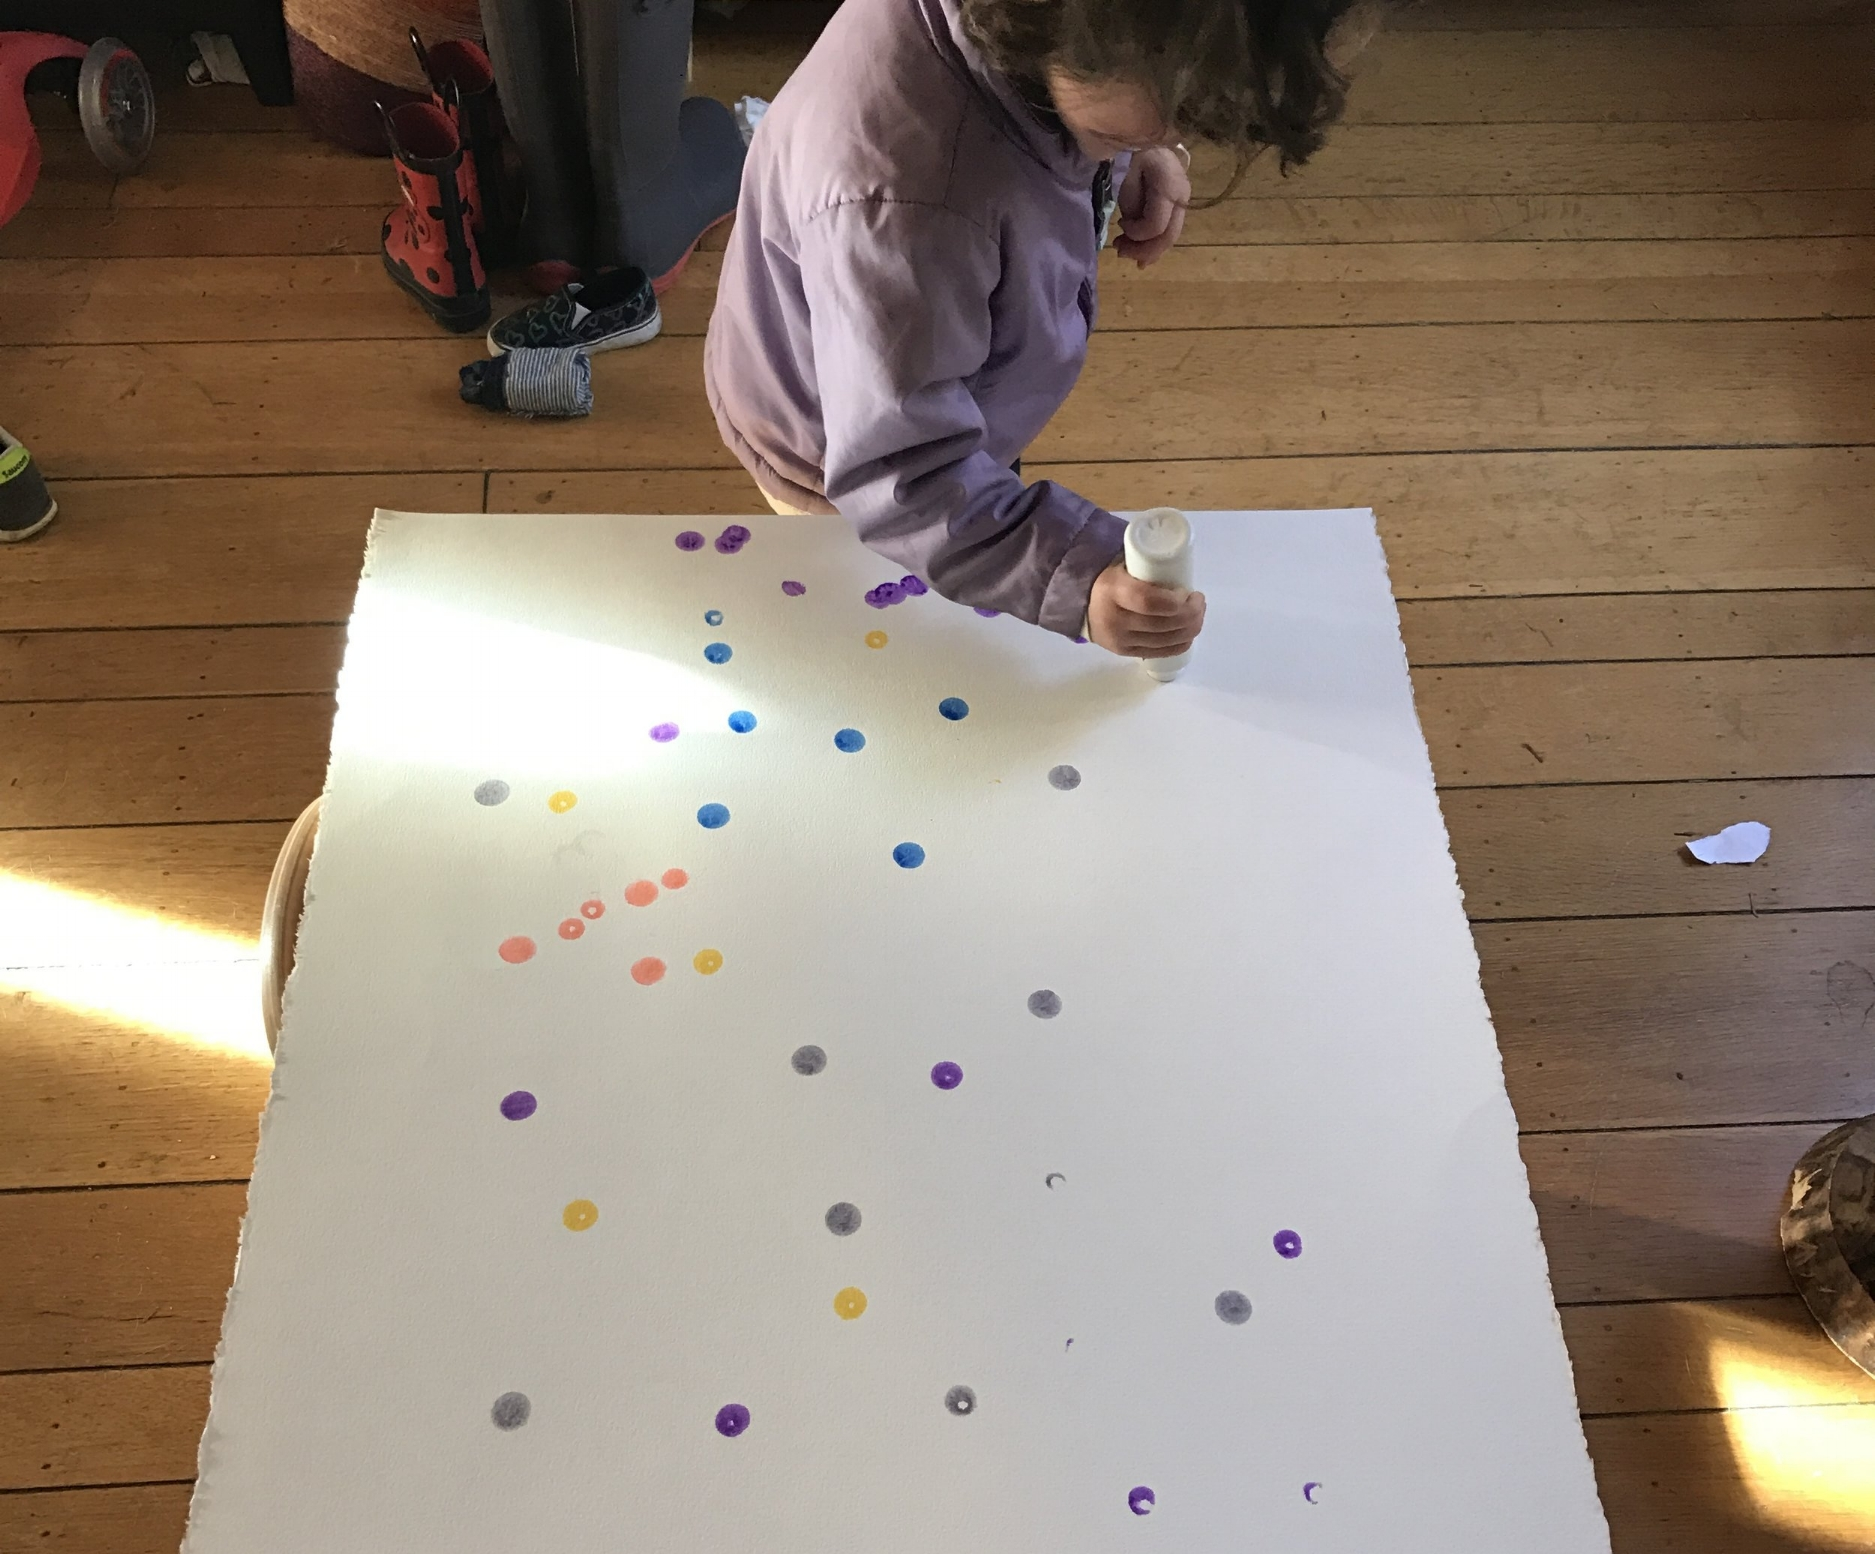 Decorate - 1. Child paints or otherwise decorates the whole paper. They can do this whole process themselves (as long as the paint stays on the paper!)